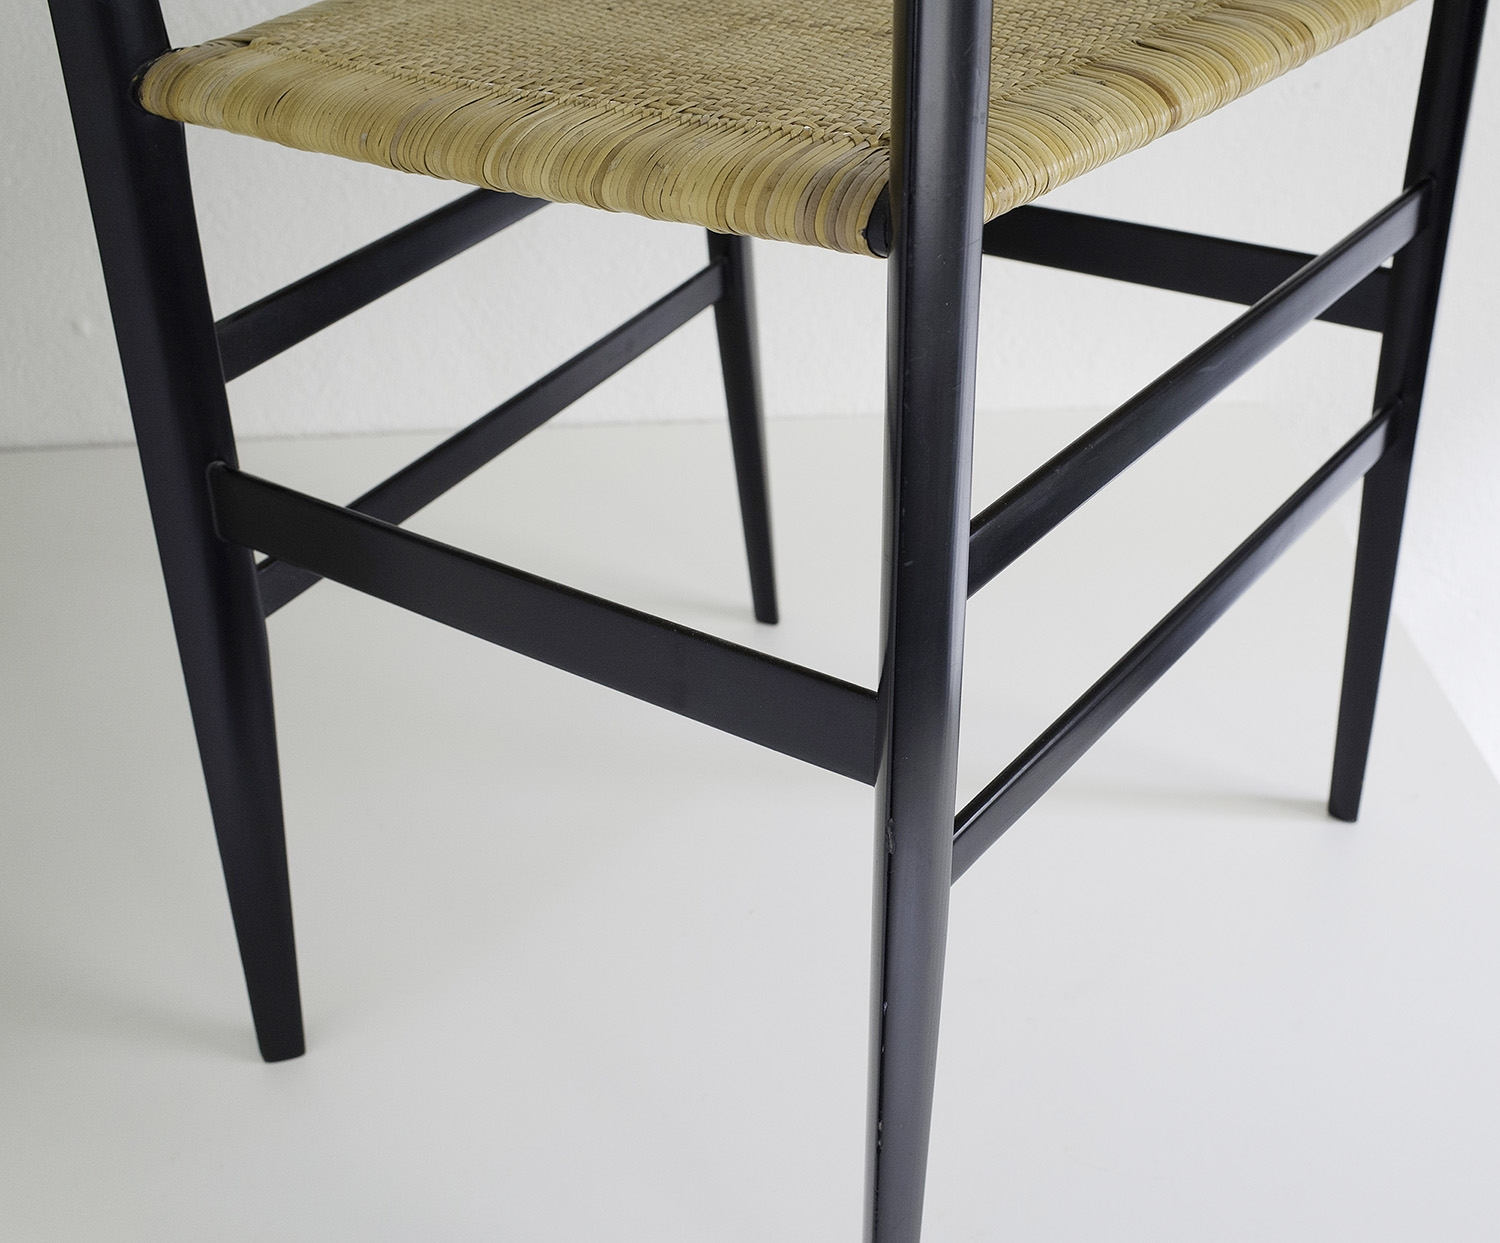 ensemble-de-4-chaises-superleggera-de-gio-ponti-image-08